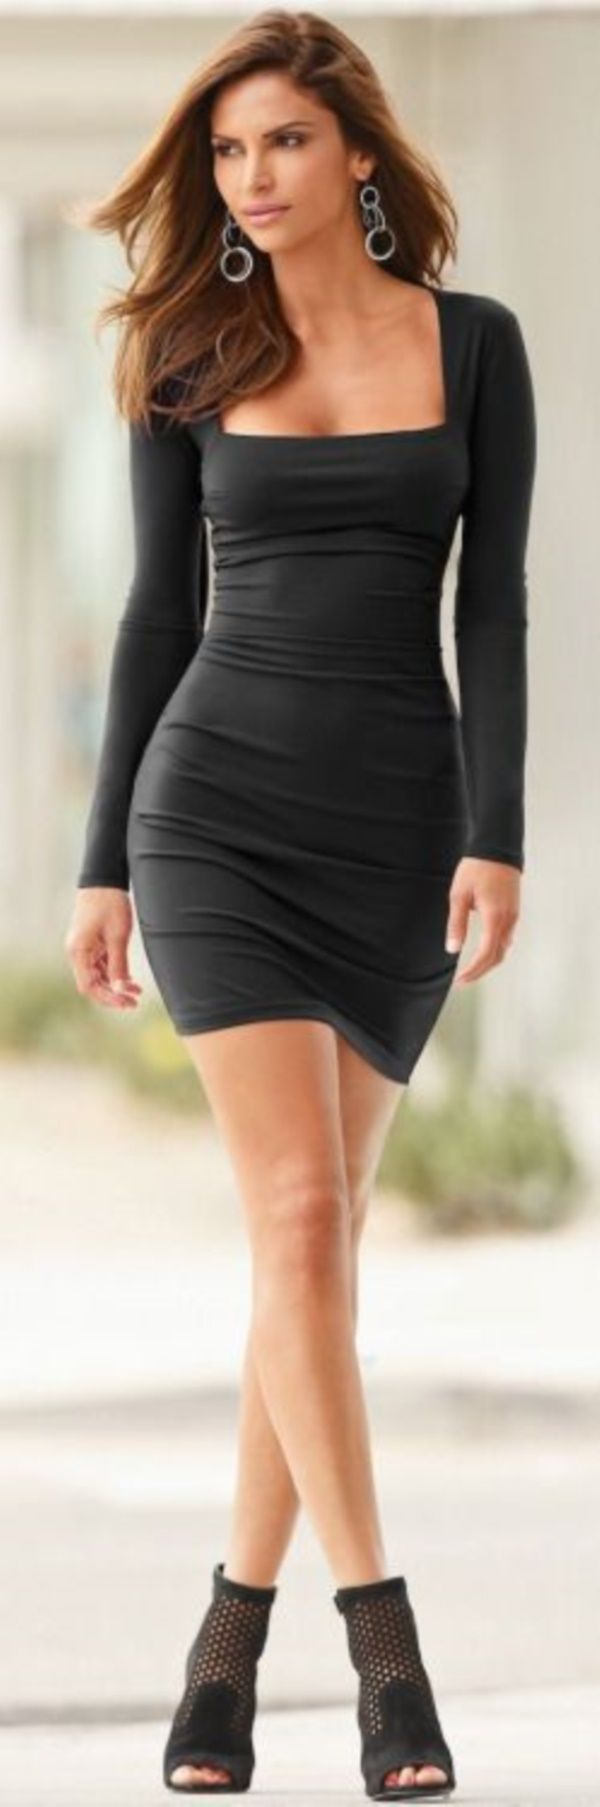 outfits for bodycon dress definition black leather skirts